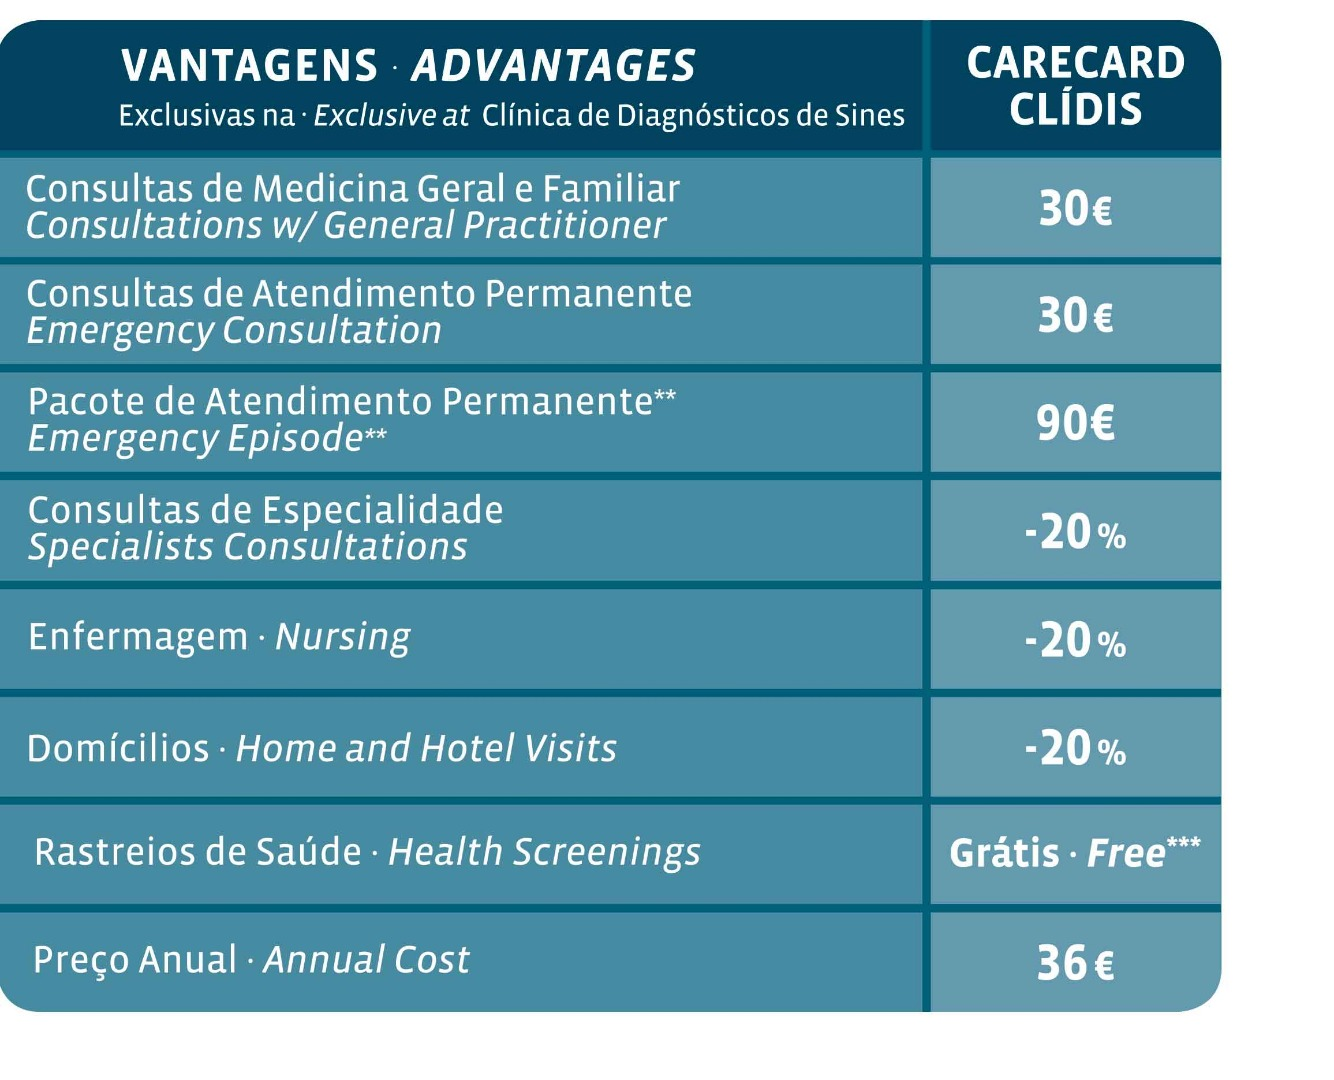 CARECARD CLÍDIS Price